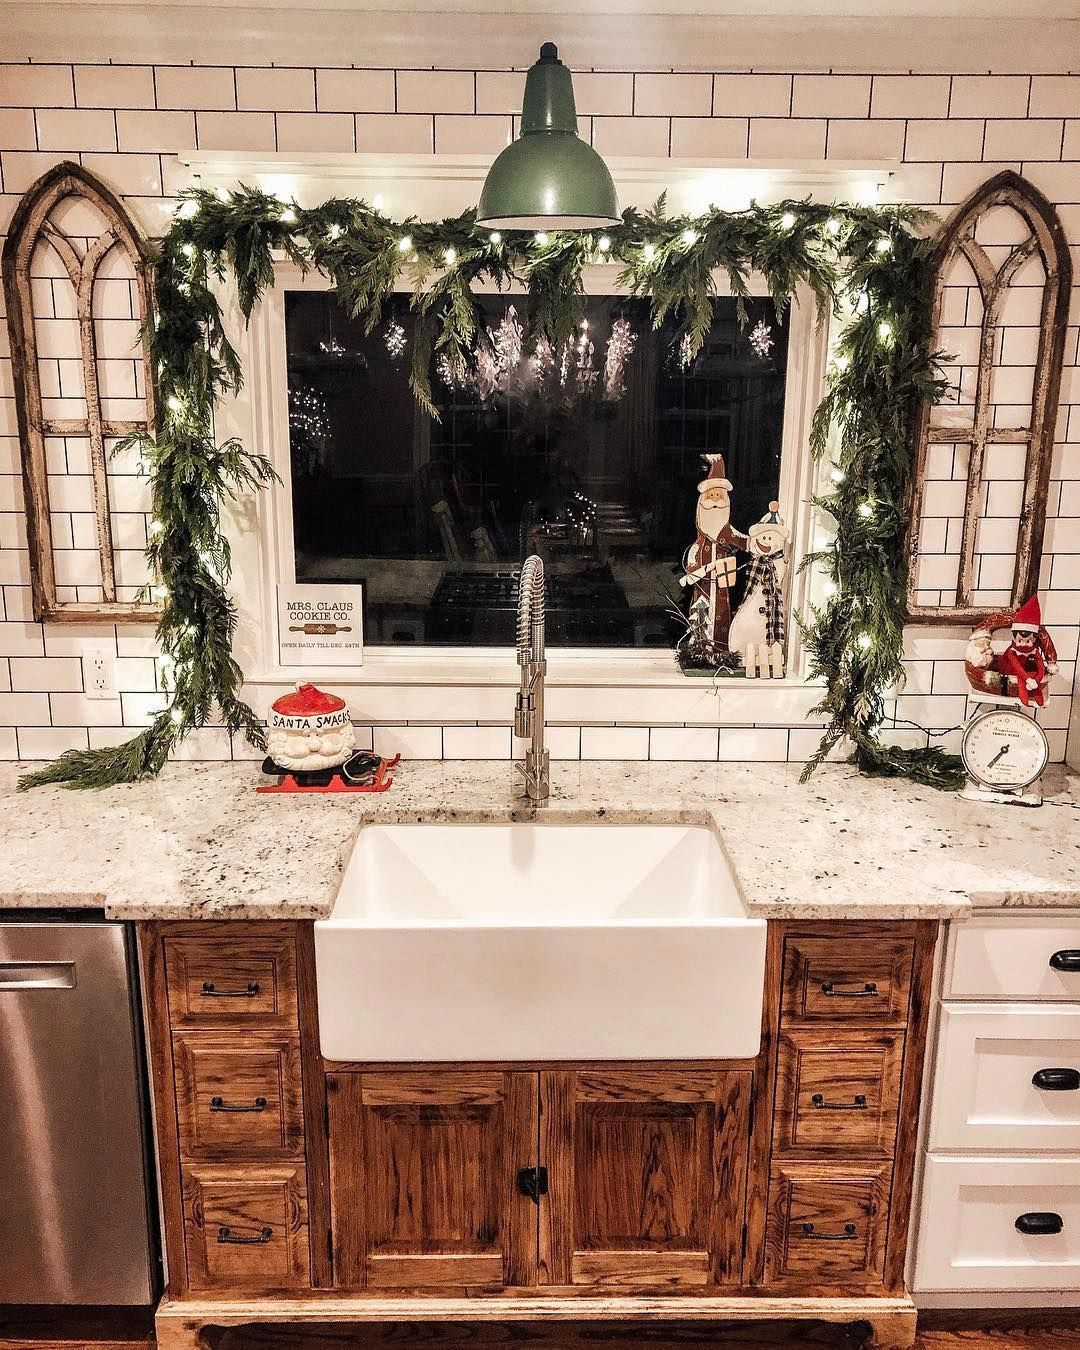 Cool antique kitchen Farmhouse sink, Sink